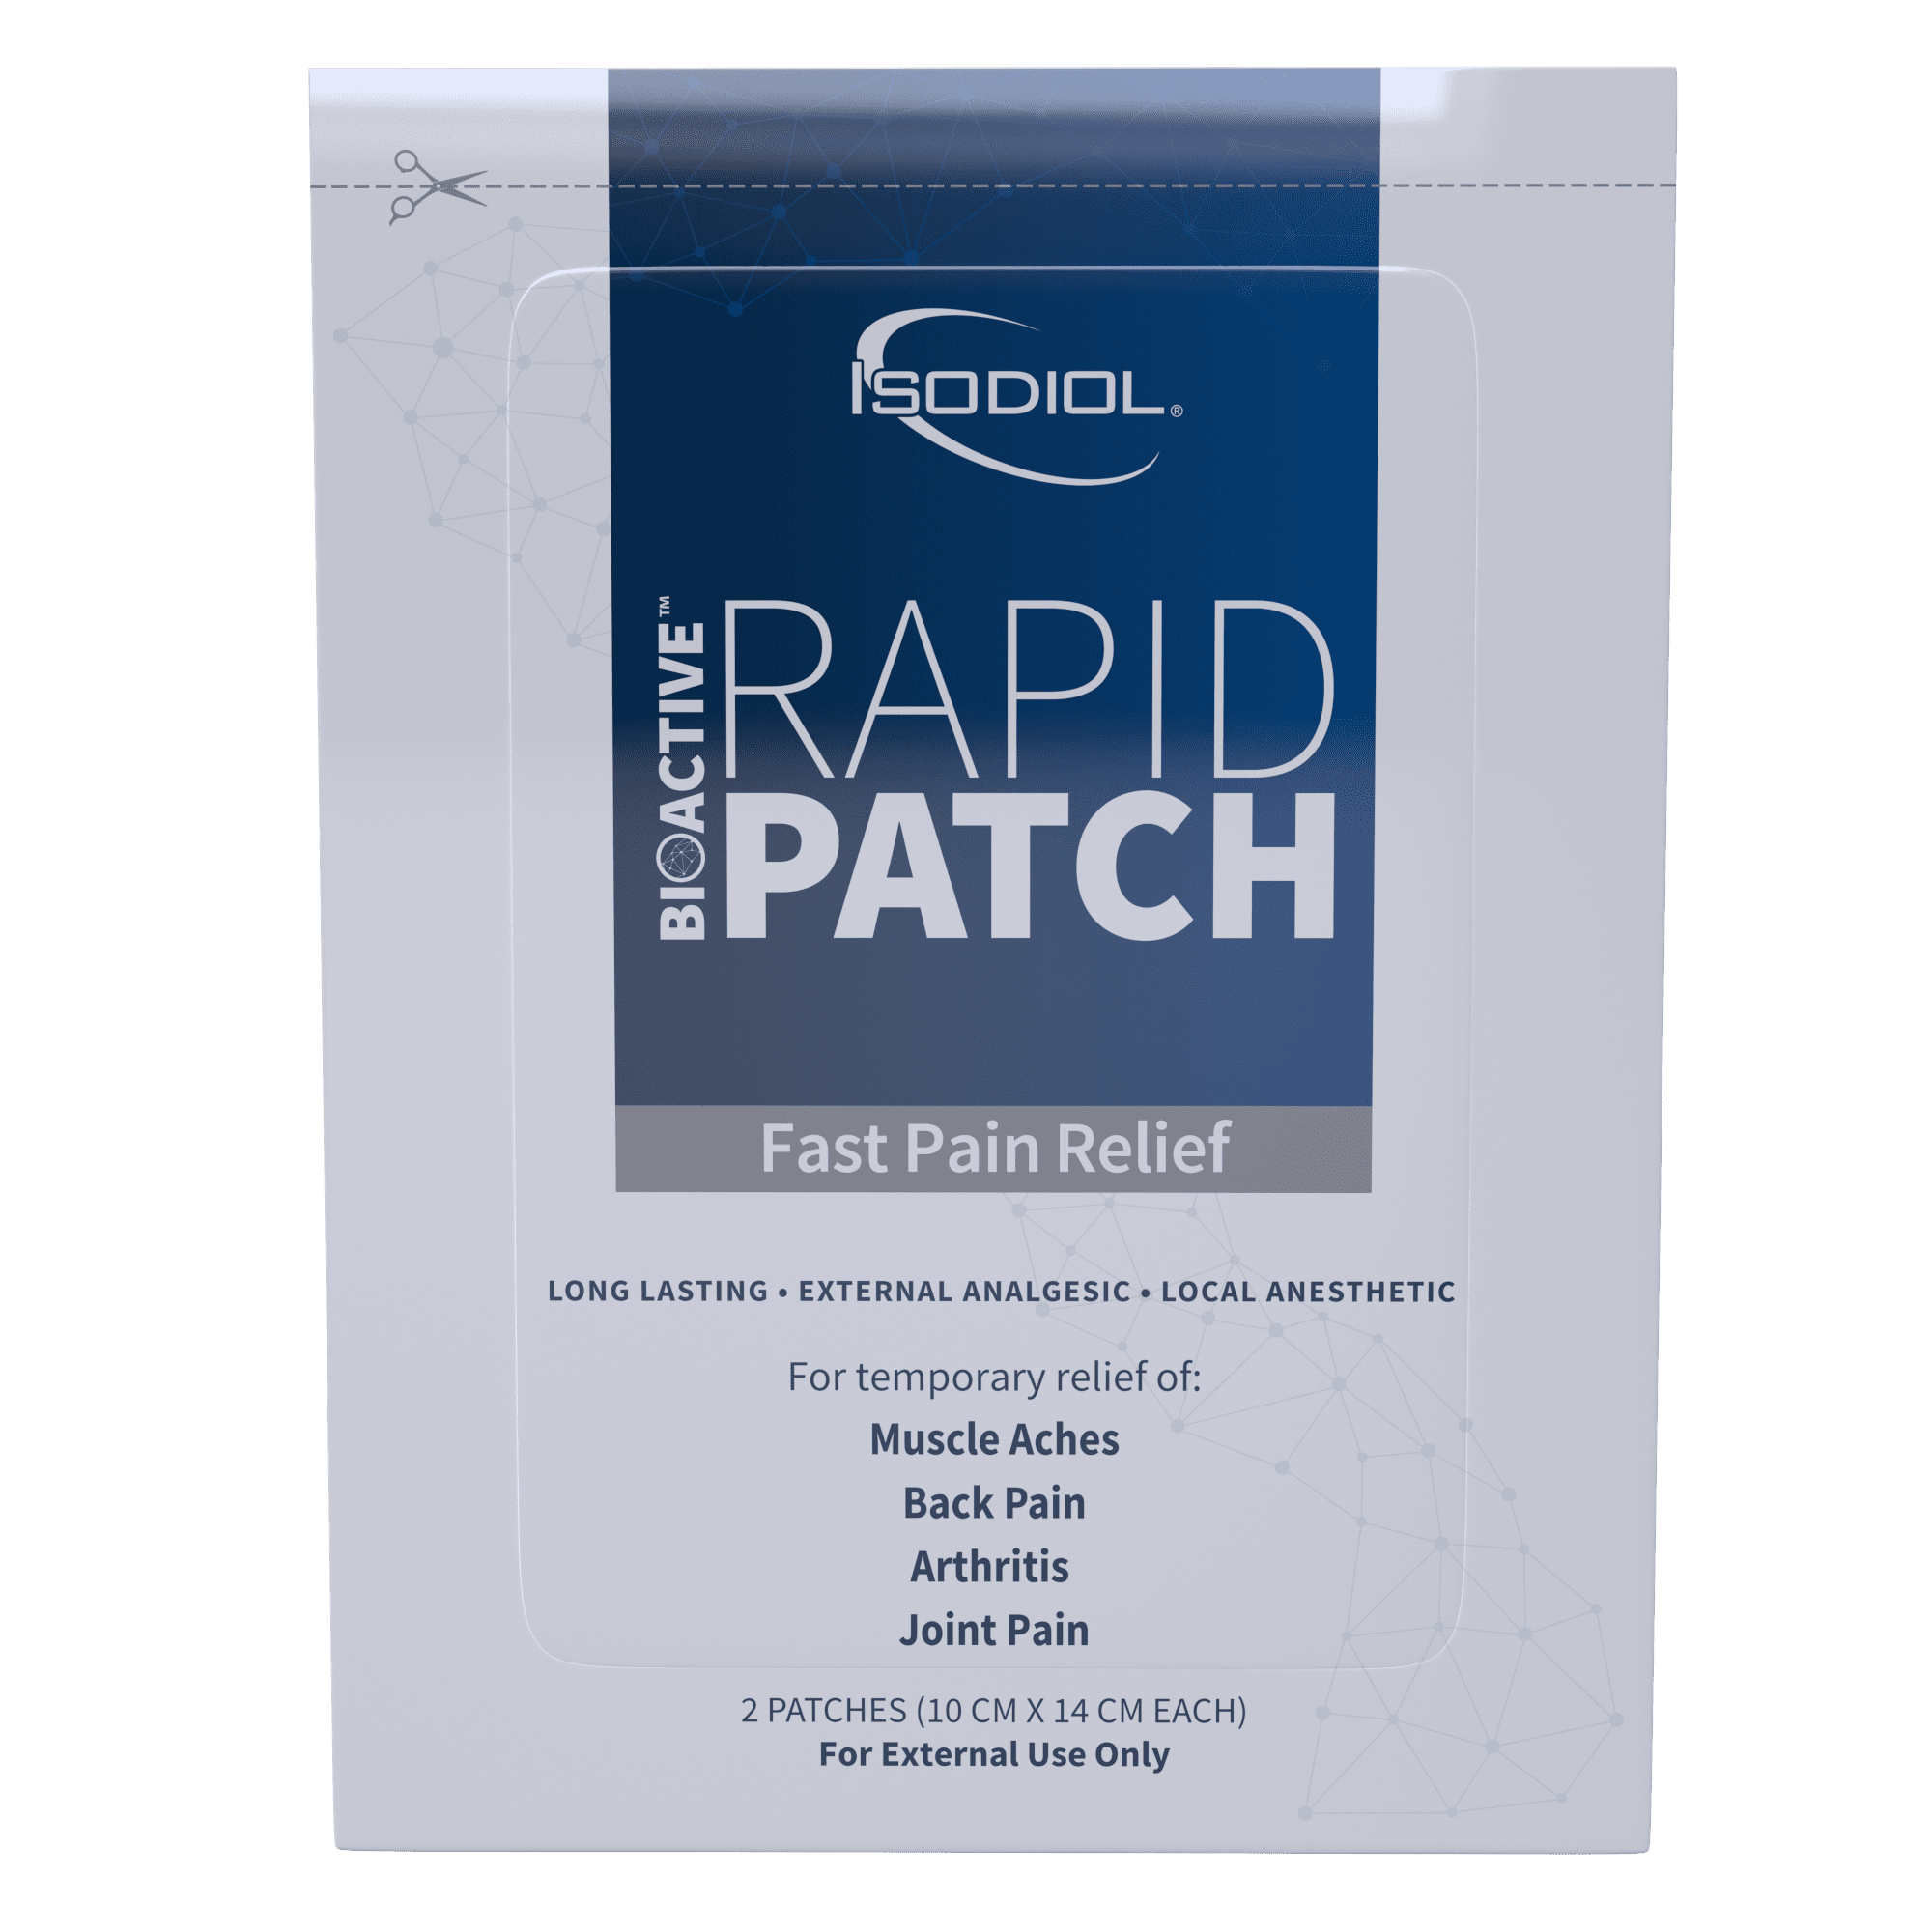 Bioactive Rapid Patch™ Isodiol